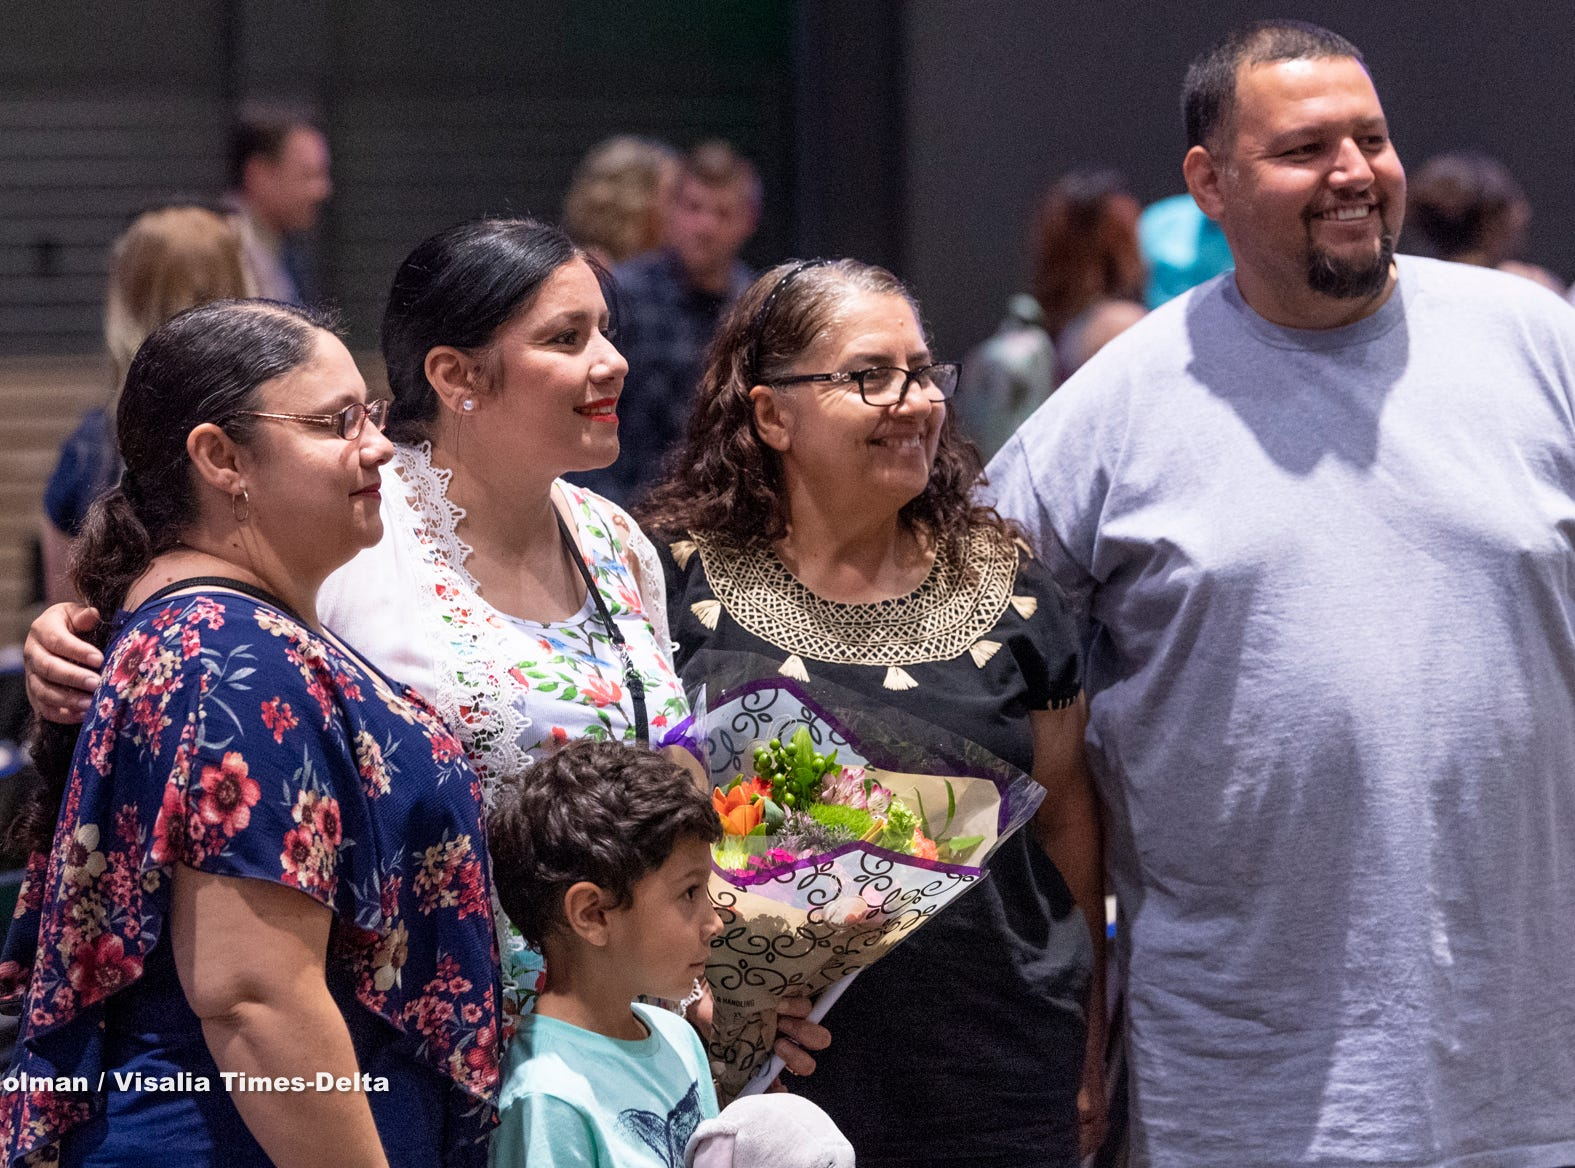 Graduate Dora Uribe, second from left, poses for pictures after the Tulare County Adult Drug Court Graduation & Commencement Ceremony on Wednesday, April 24, 2019.